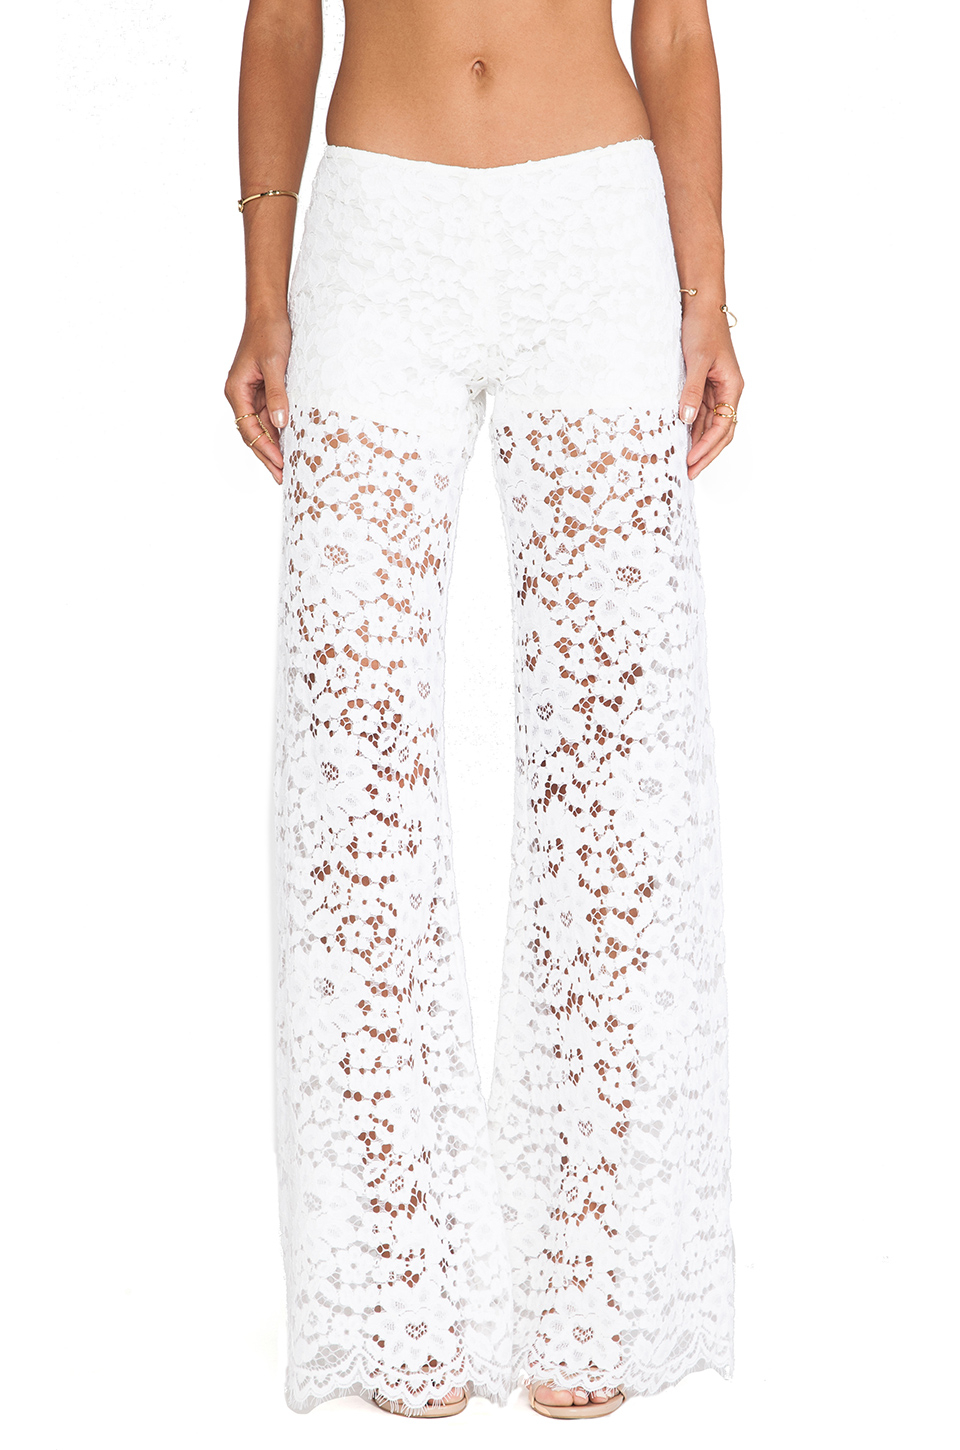 Alexis Madrid Wide Leg Lace Pants in White | Lyst